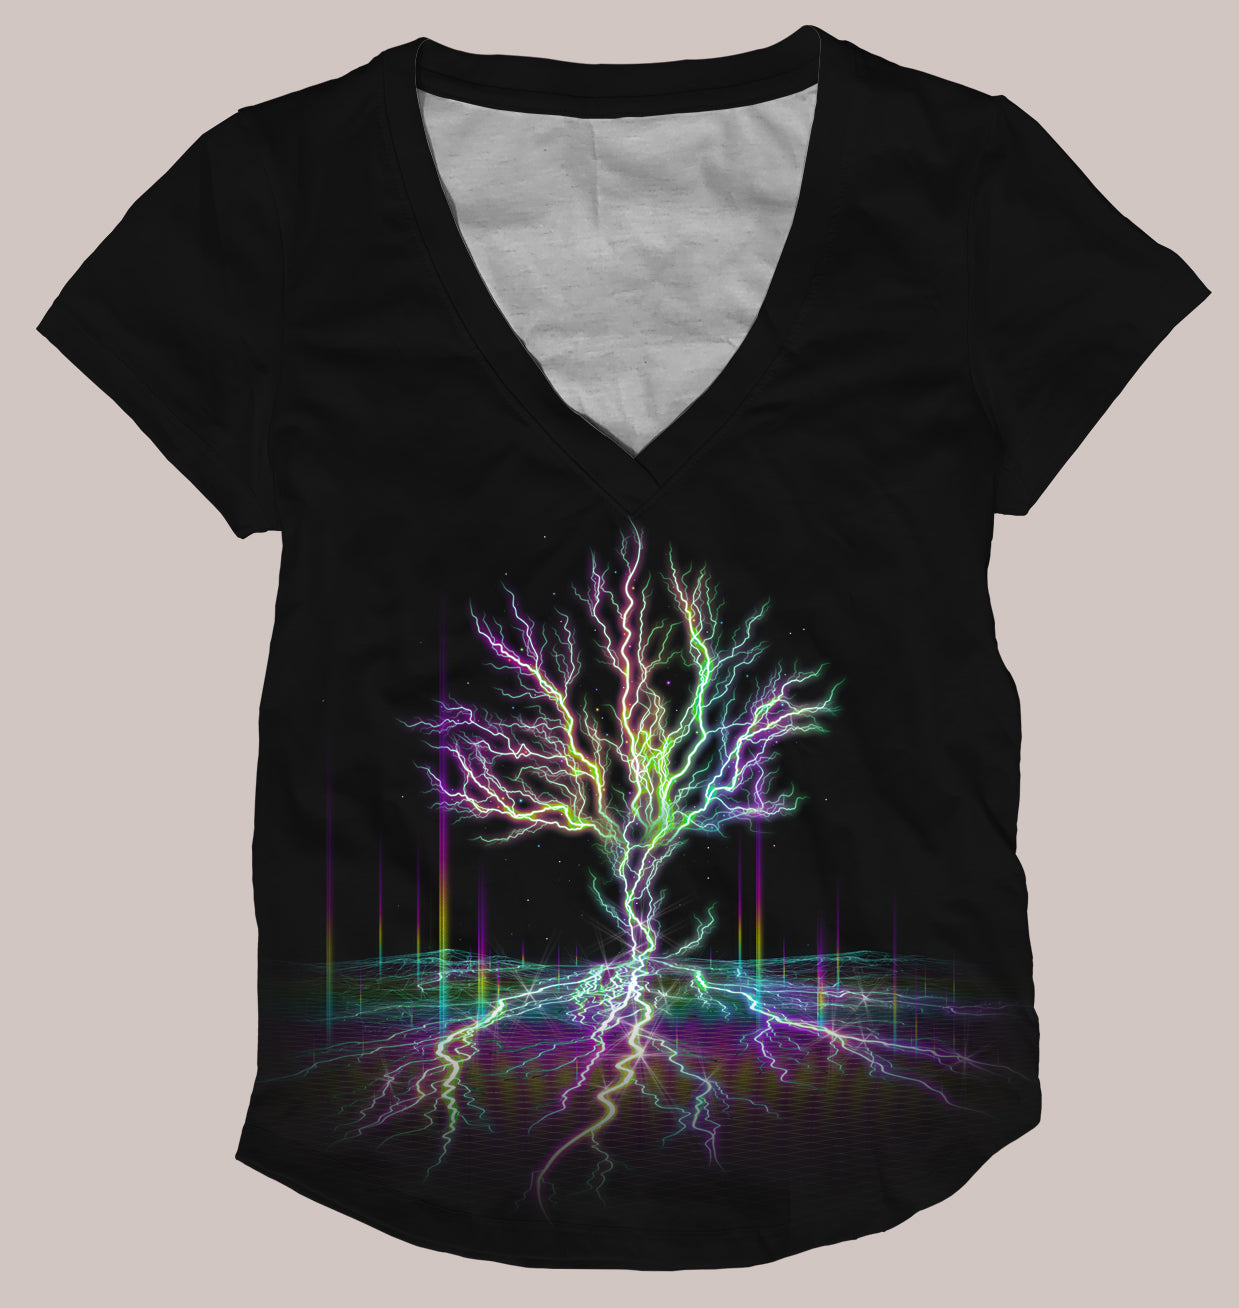 Electreecity of Life Women's Signature Shirt - Tetramode® | Psy Styles. Men & Womens Psychedelic Tops & Bottoms